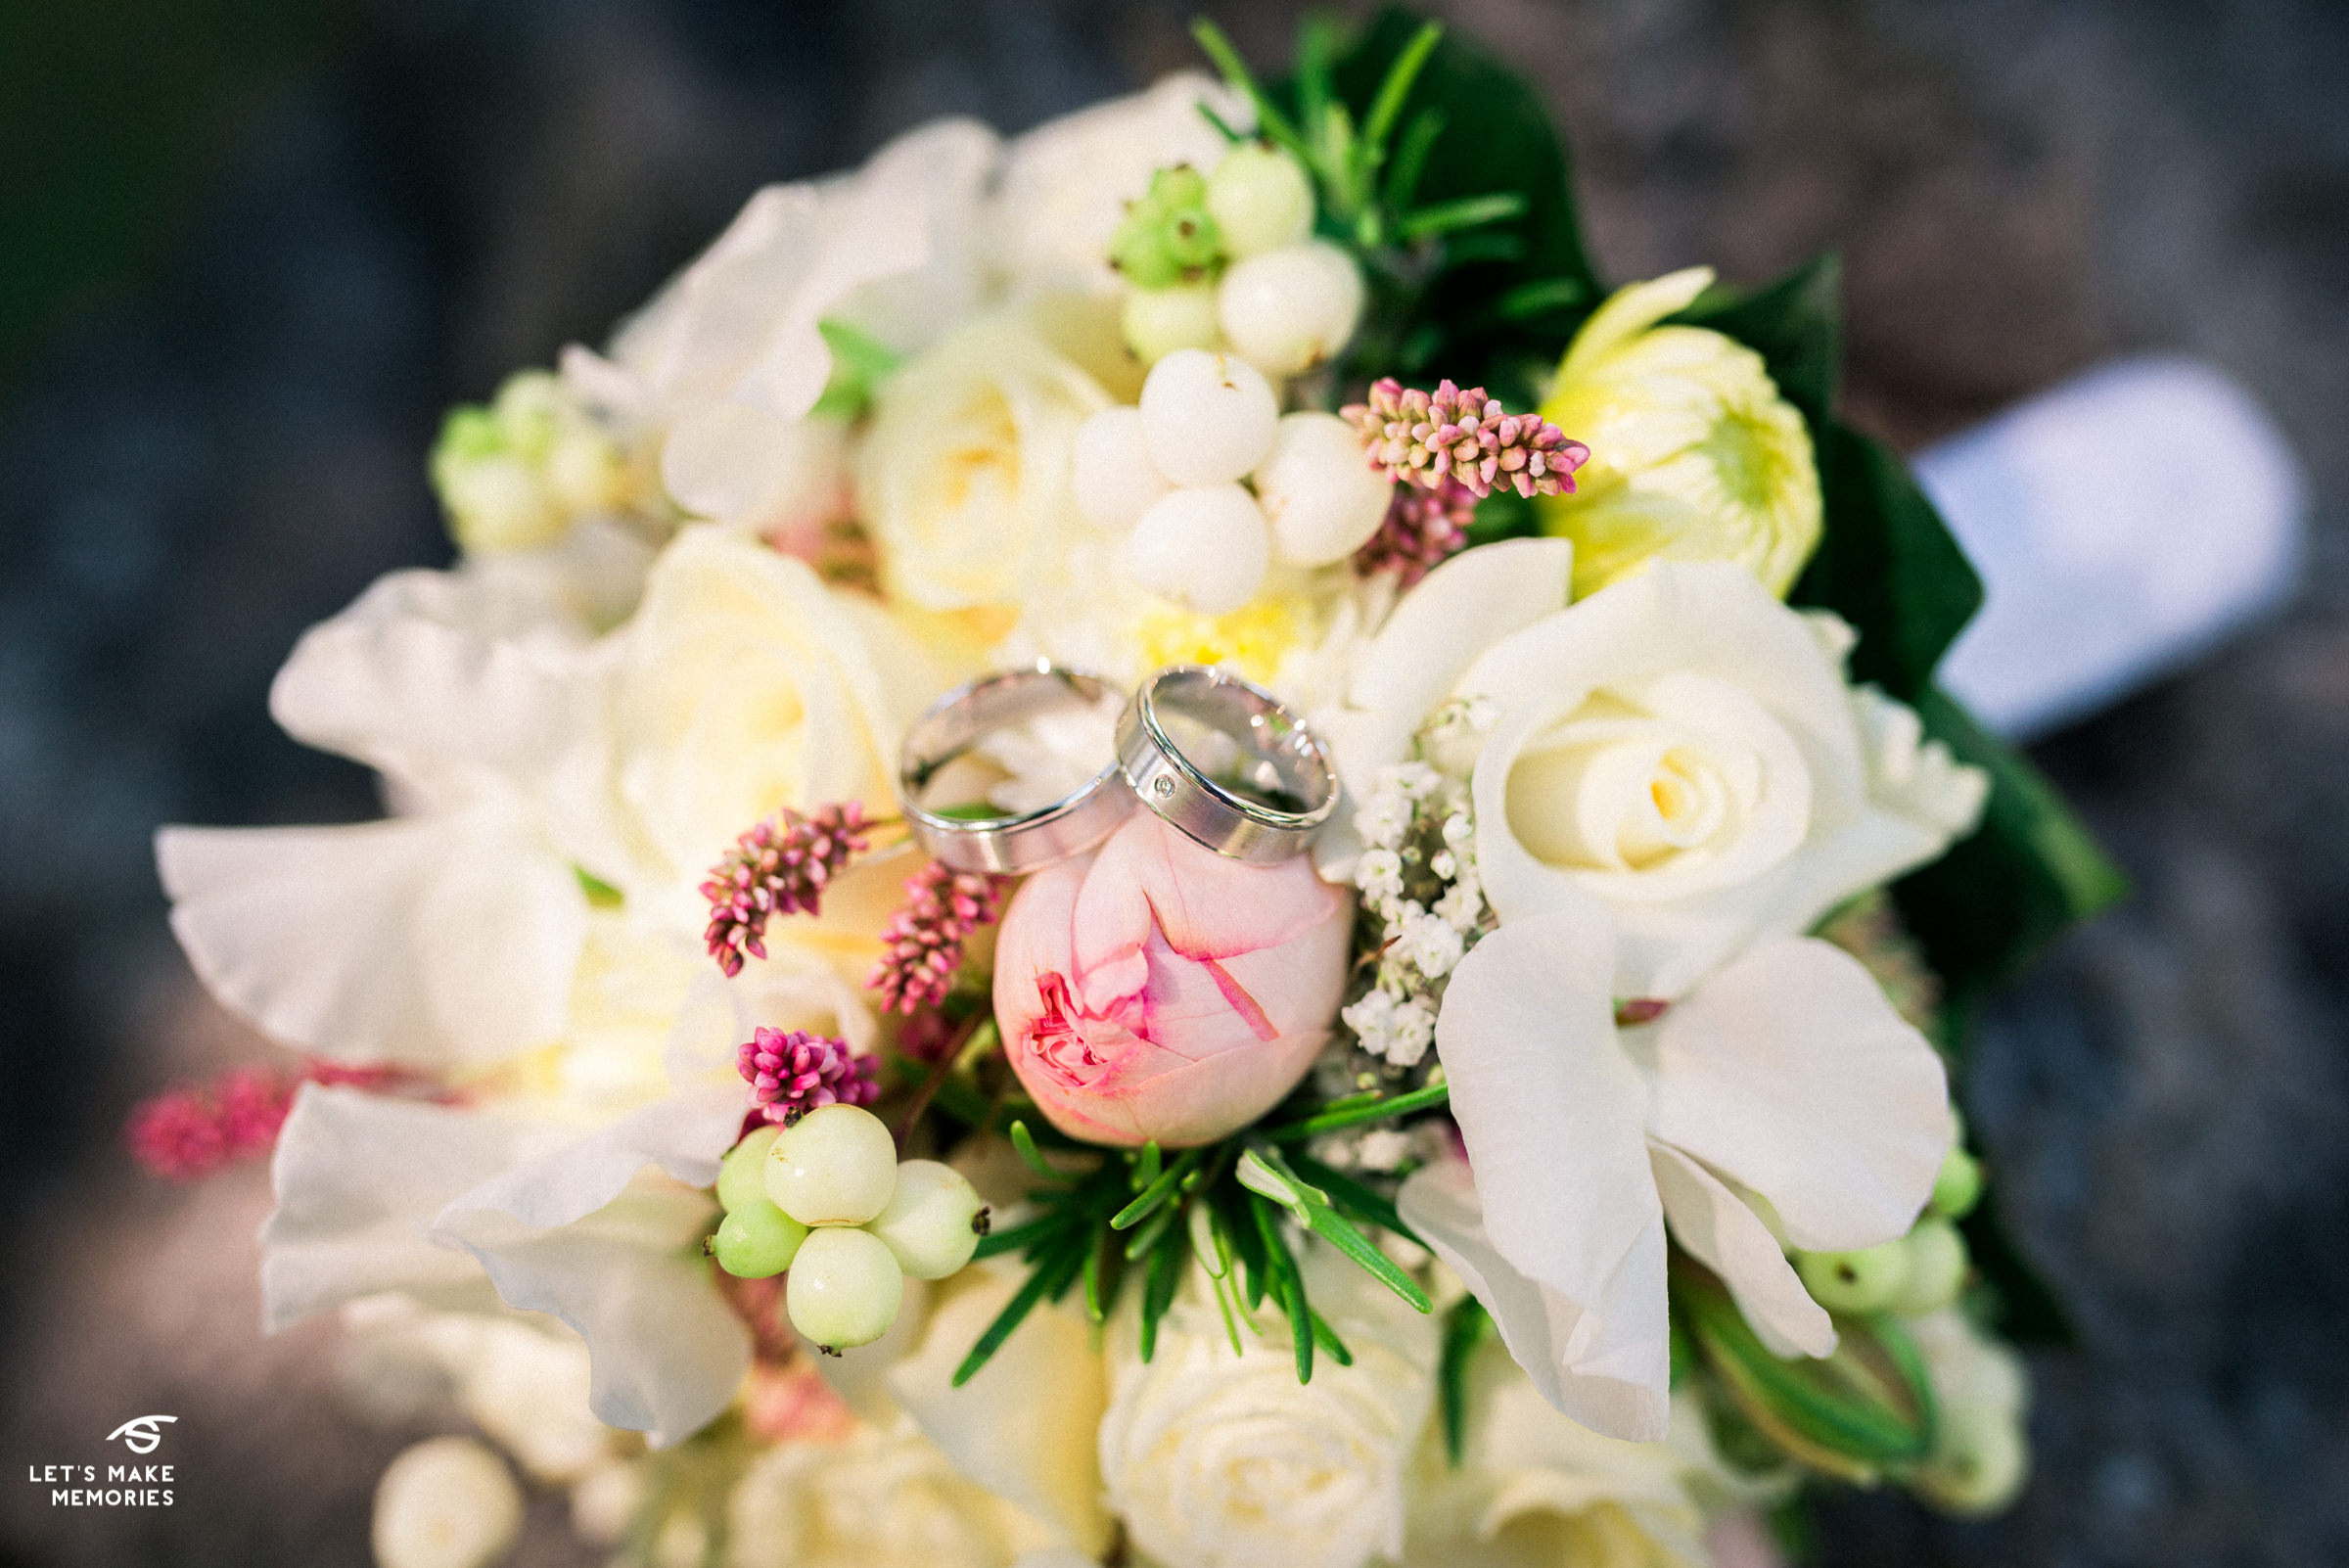 wedding rings placed on boquet